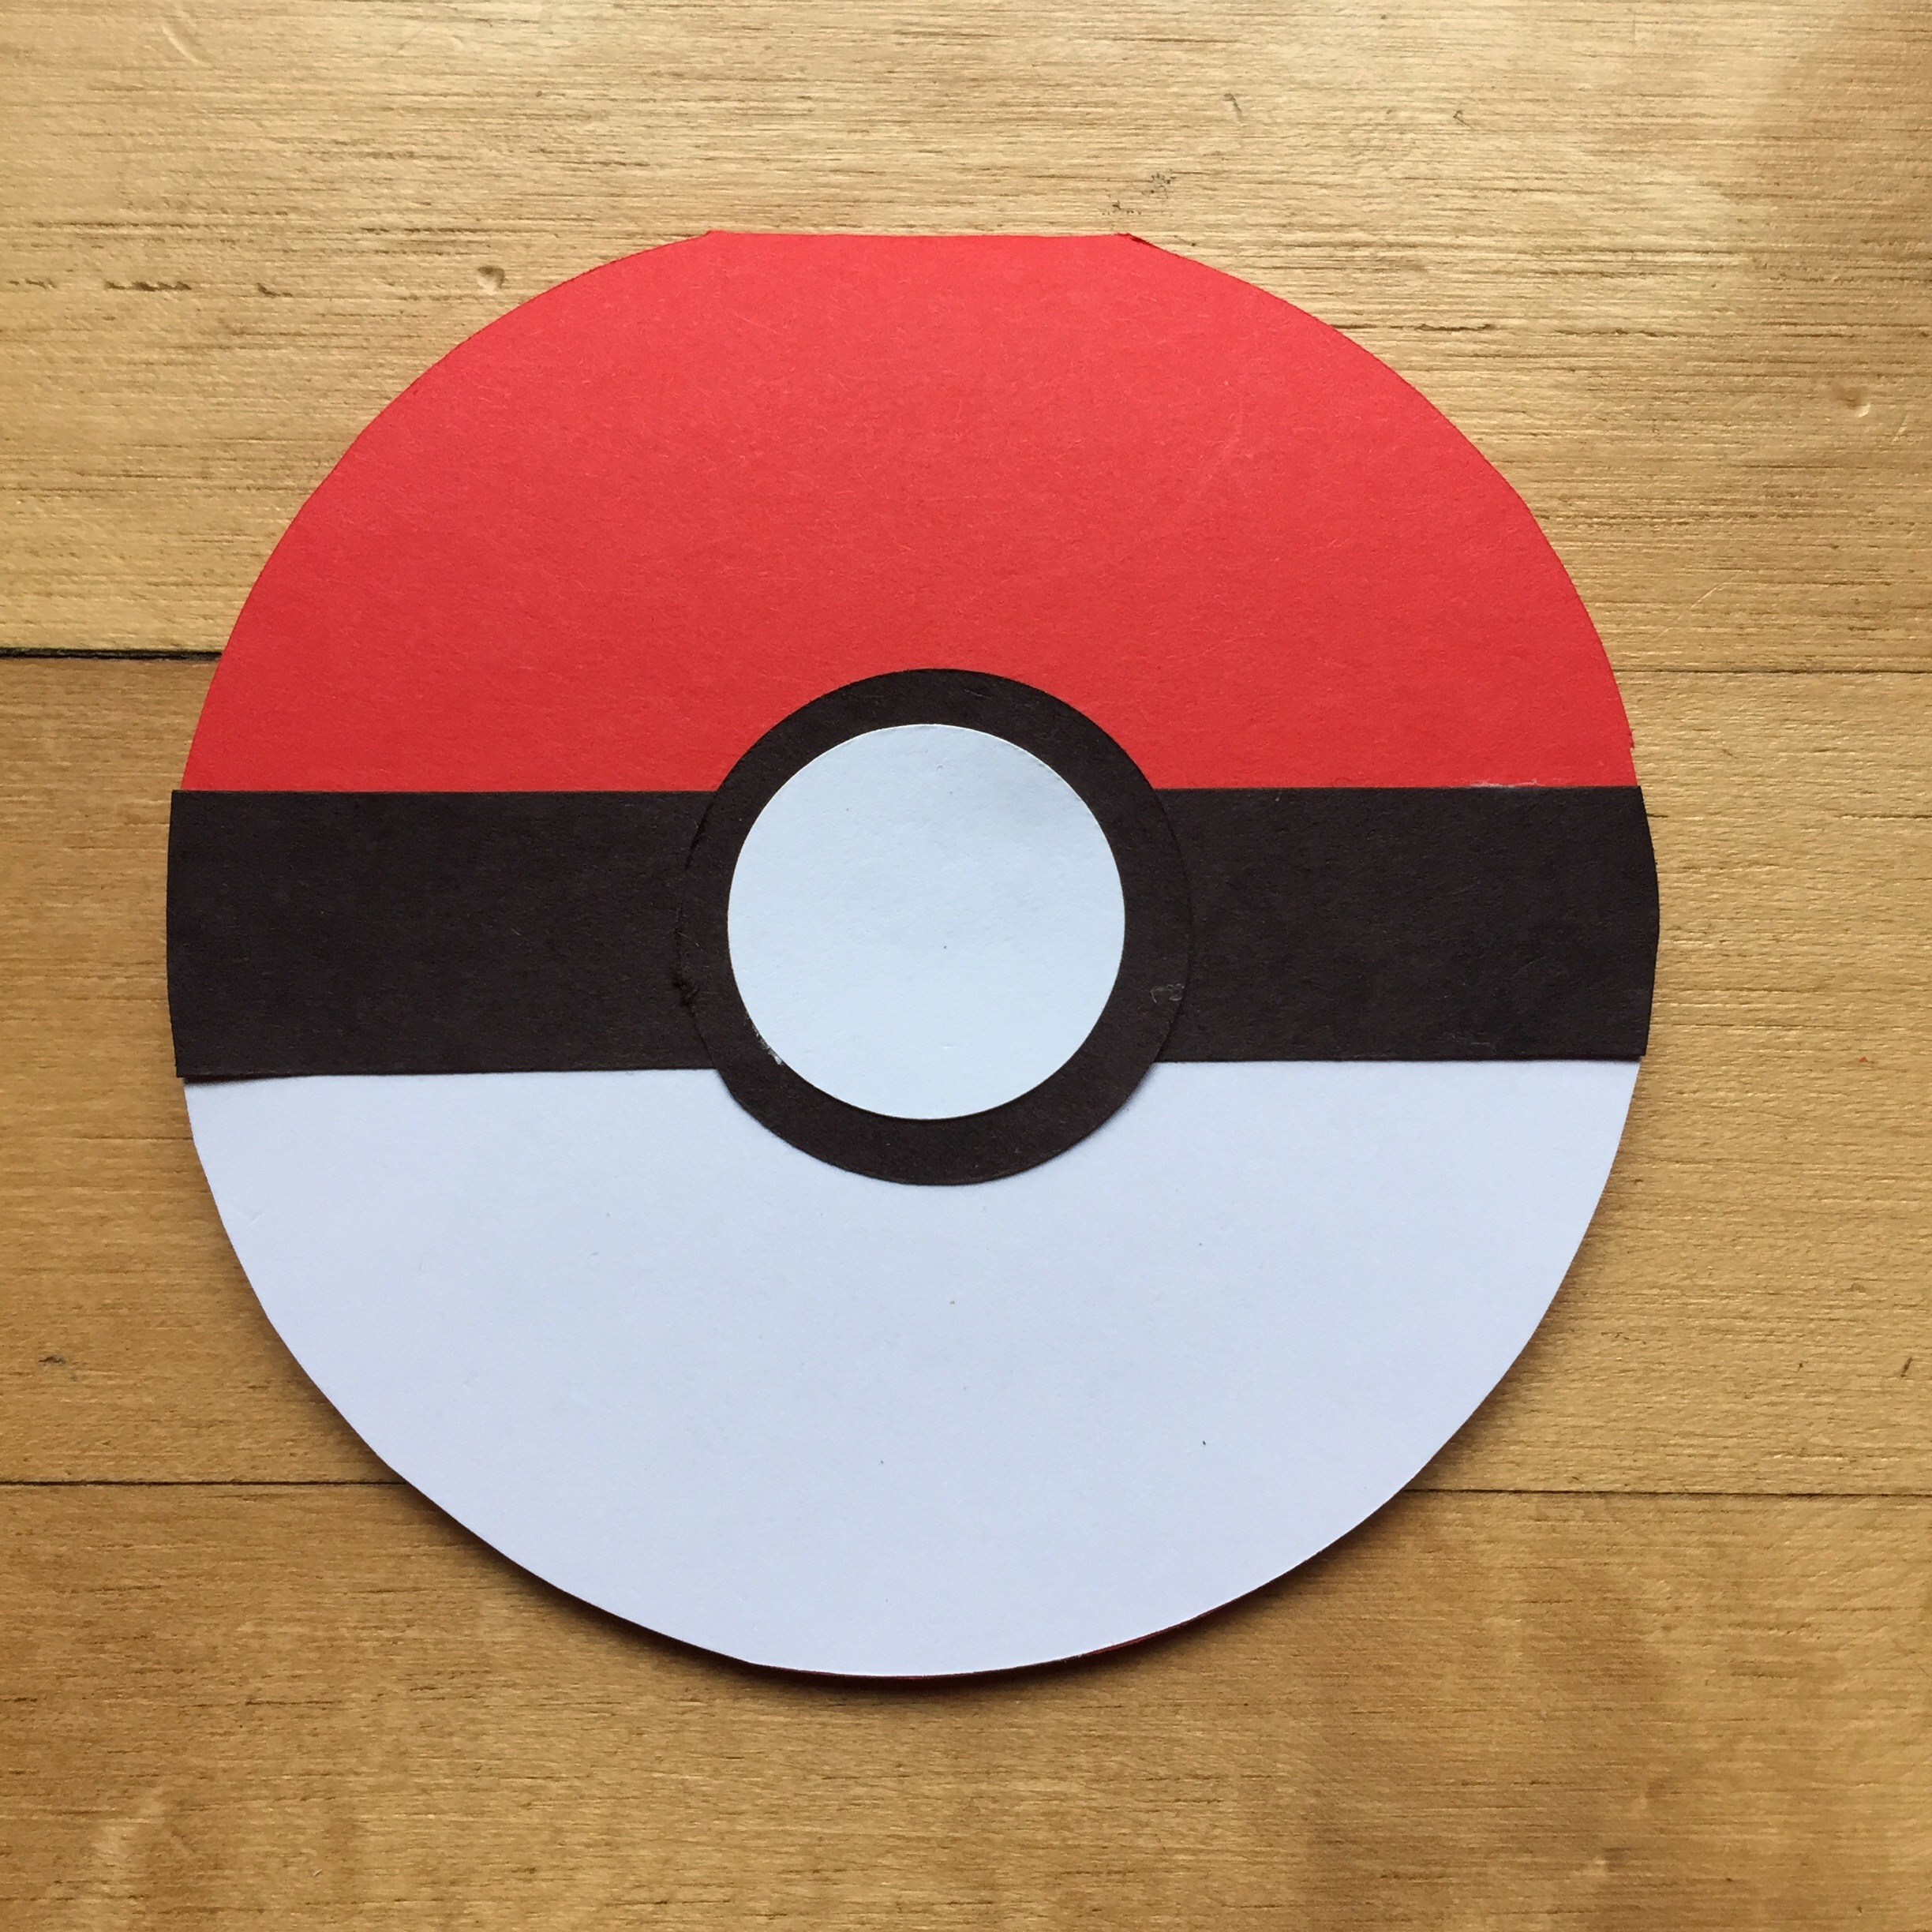 How To Make Pokeball With Paper